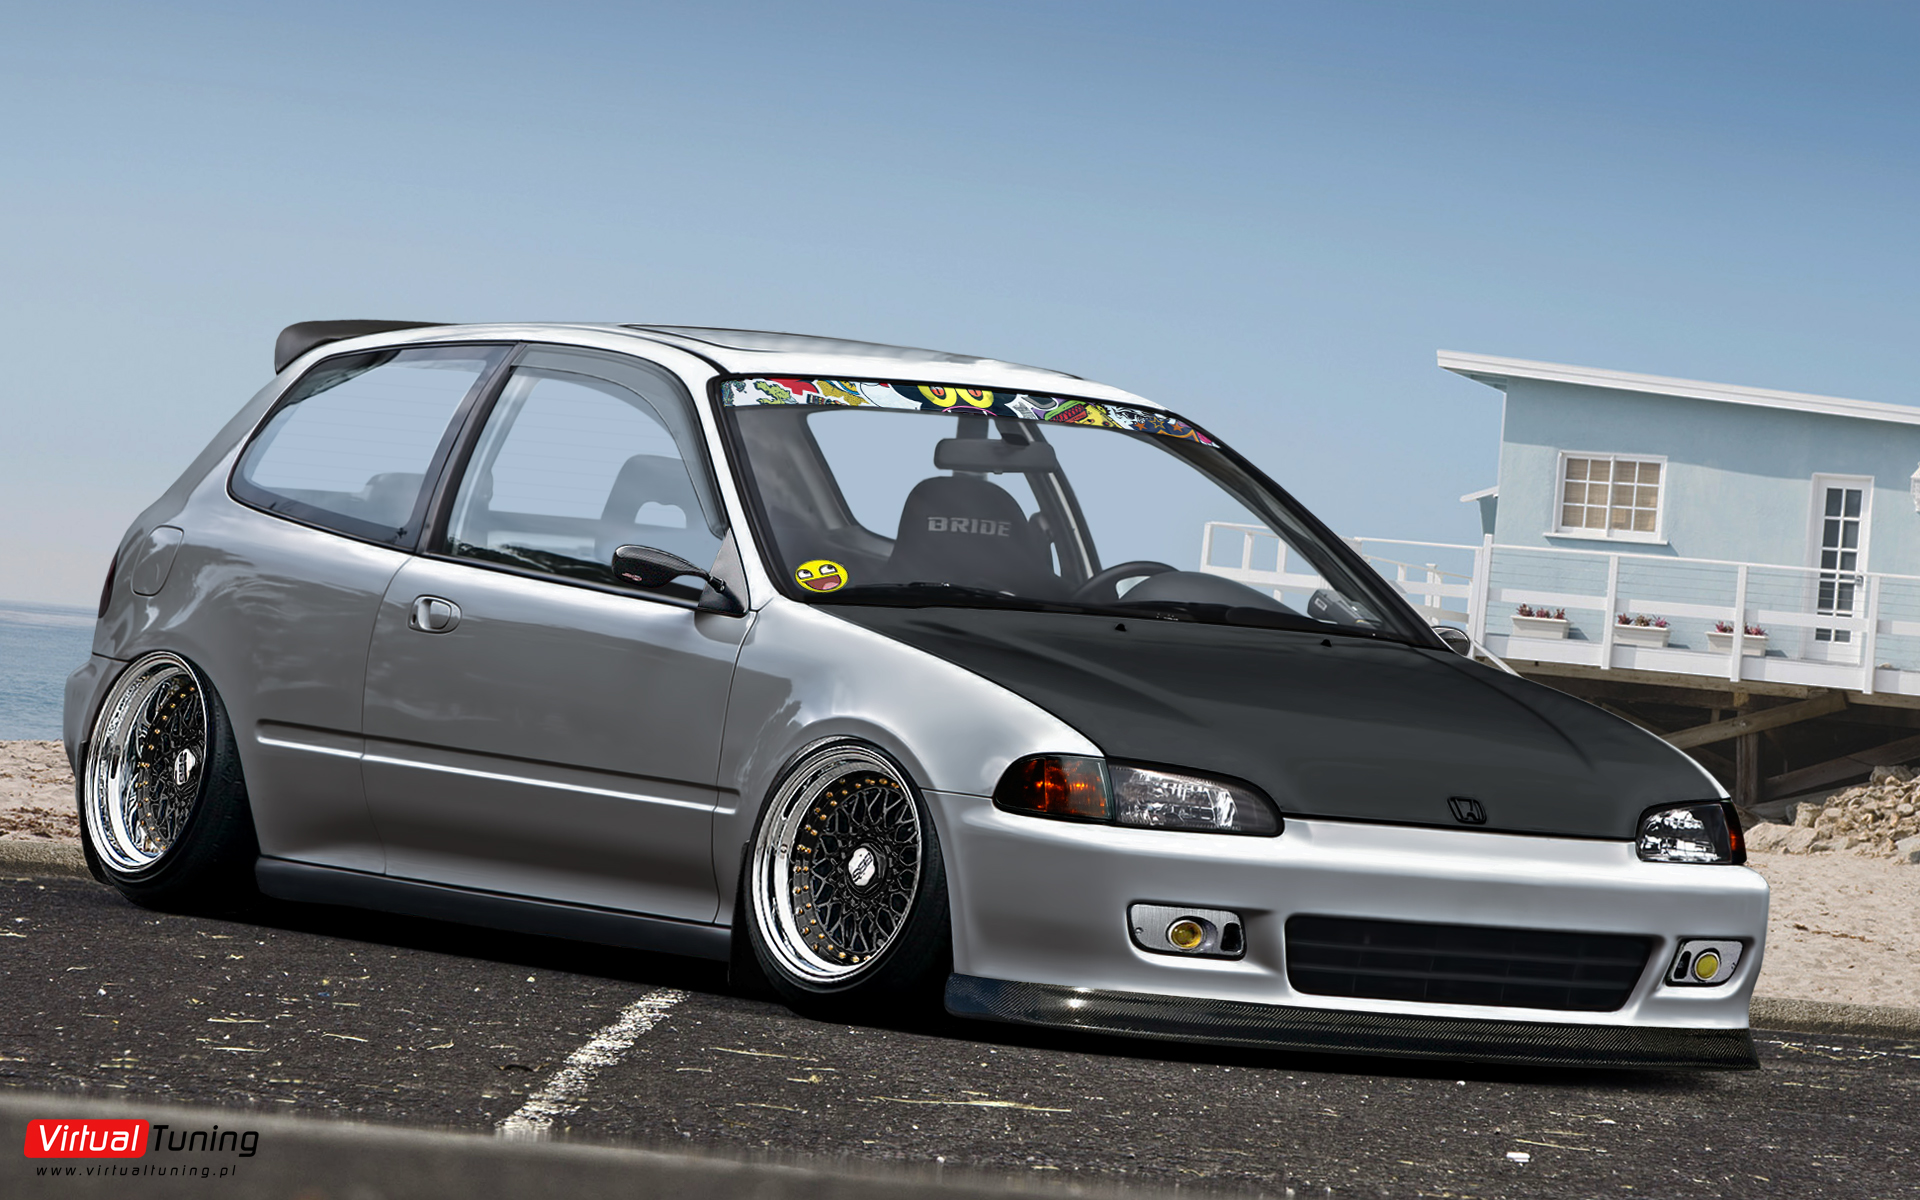 Honda civic eg hella flush by radziodrifter on deviantart honda civic eg hella flush by radziodrifter swarovskicordoba Images